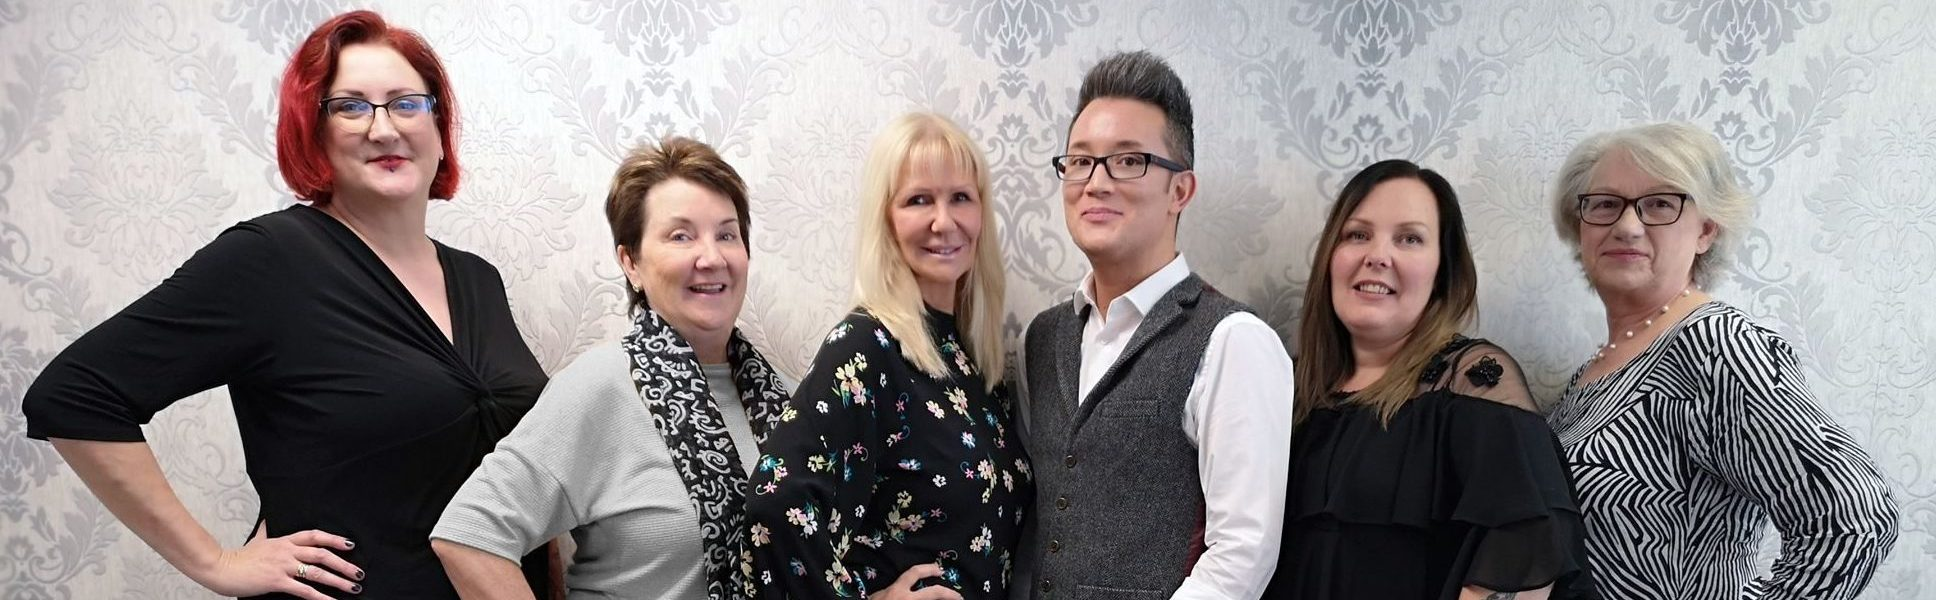 Beauty Health Aesthetics Team